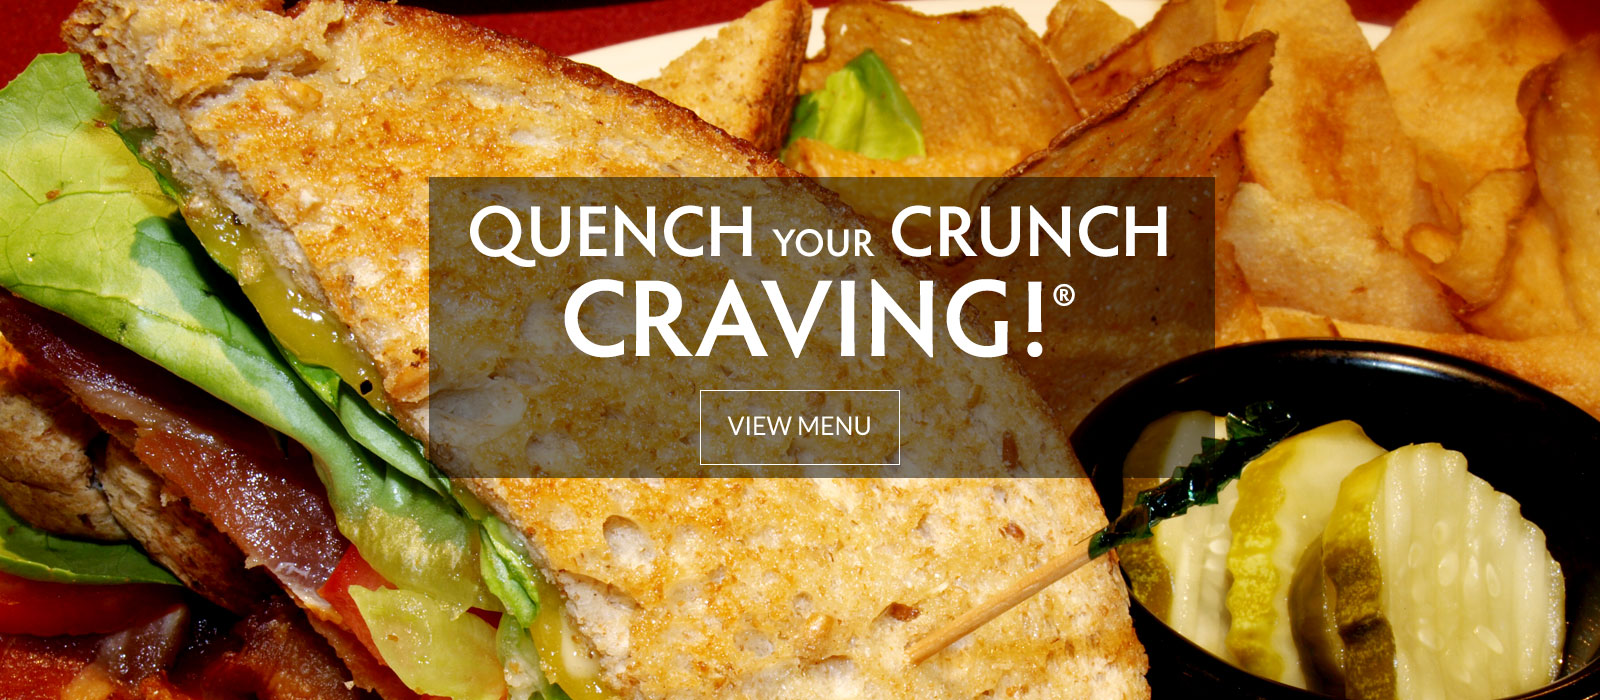 Quench your crunch craving!